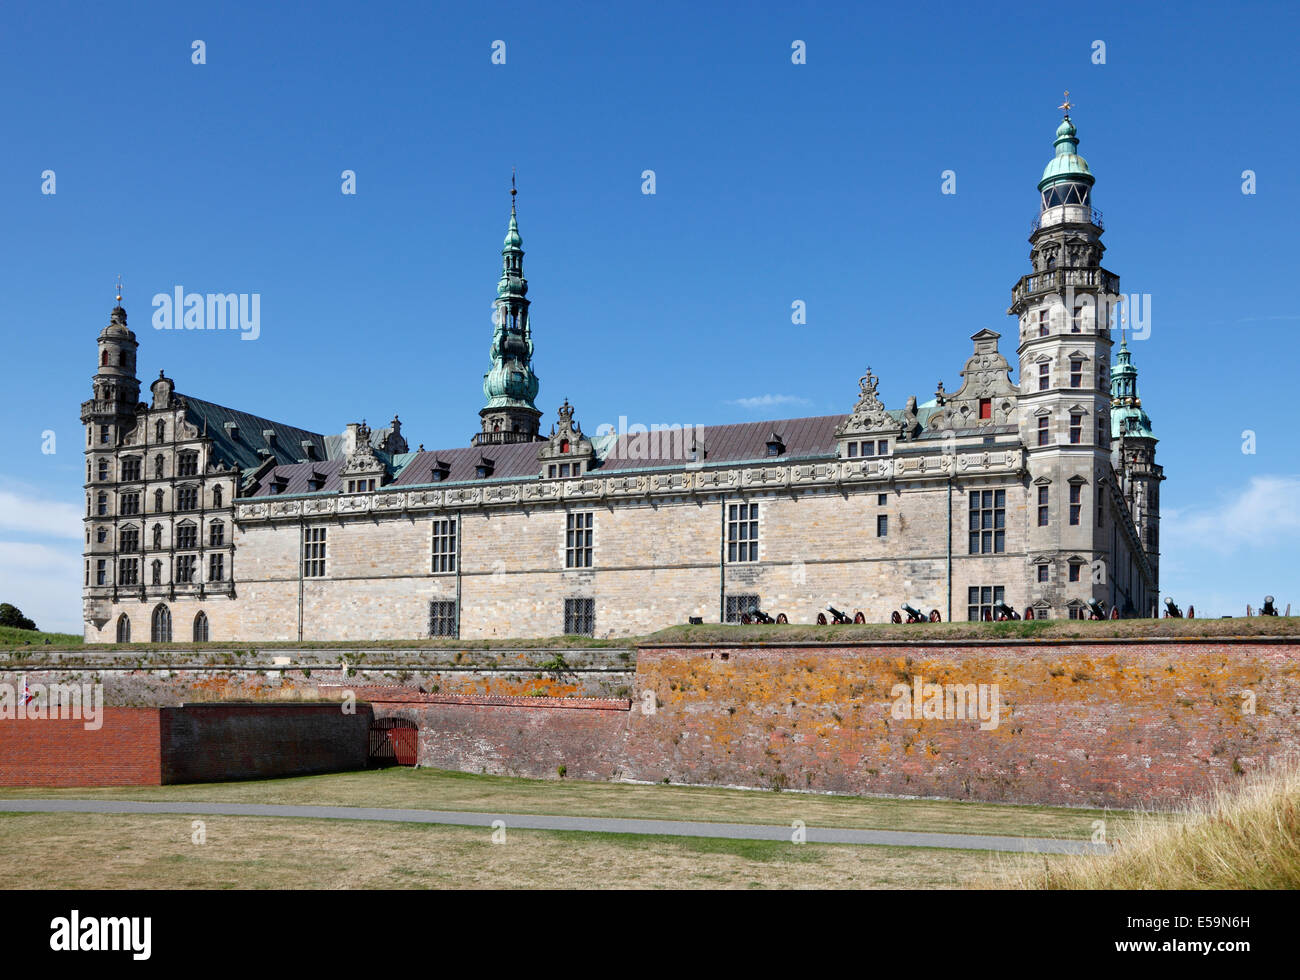 The  renaissance castle Kronborg in Elsinore (Helsingør), Denmark, seen from the beach on a sunny summer day. - Stock Image